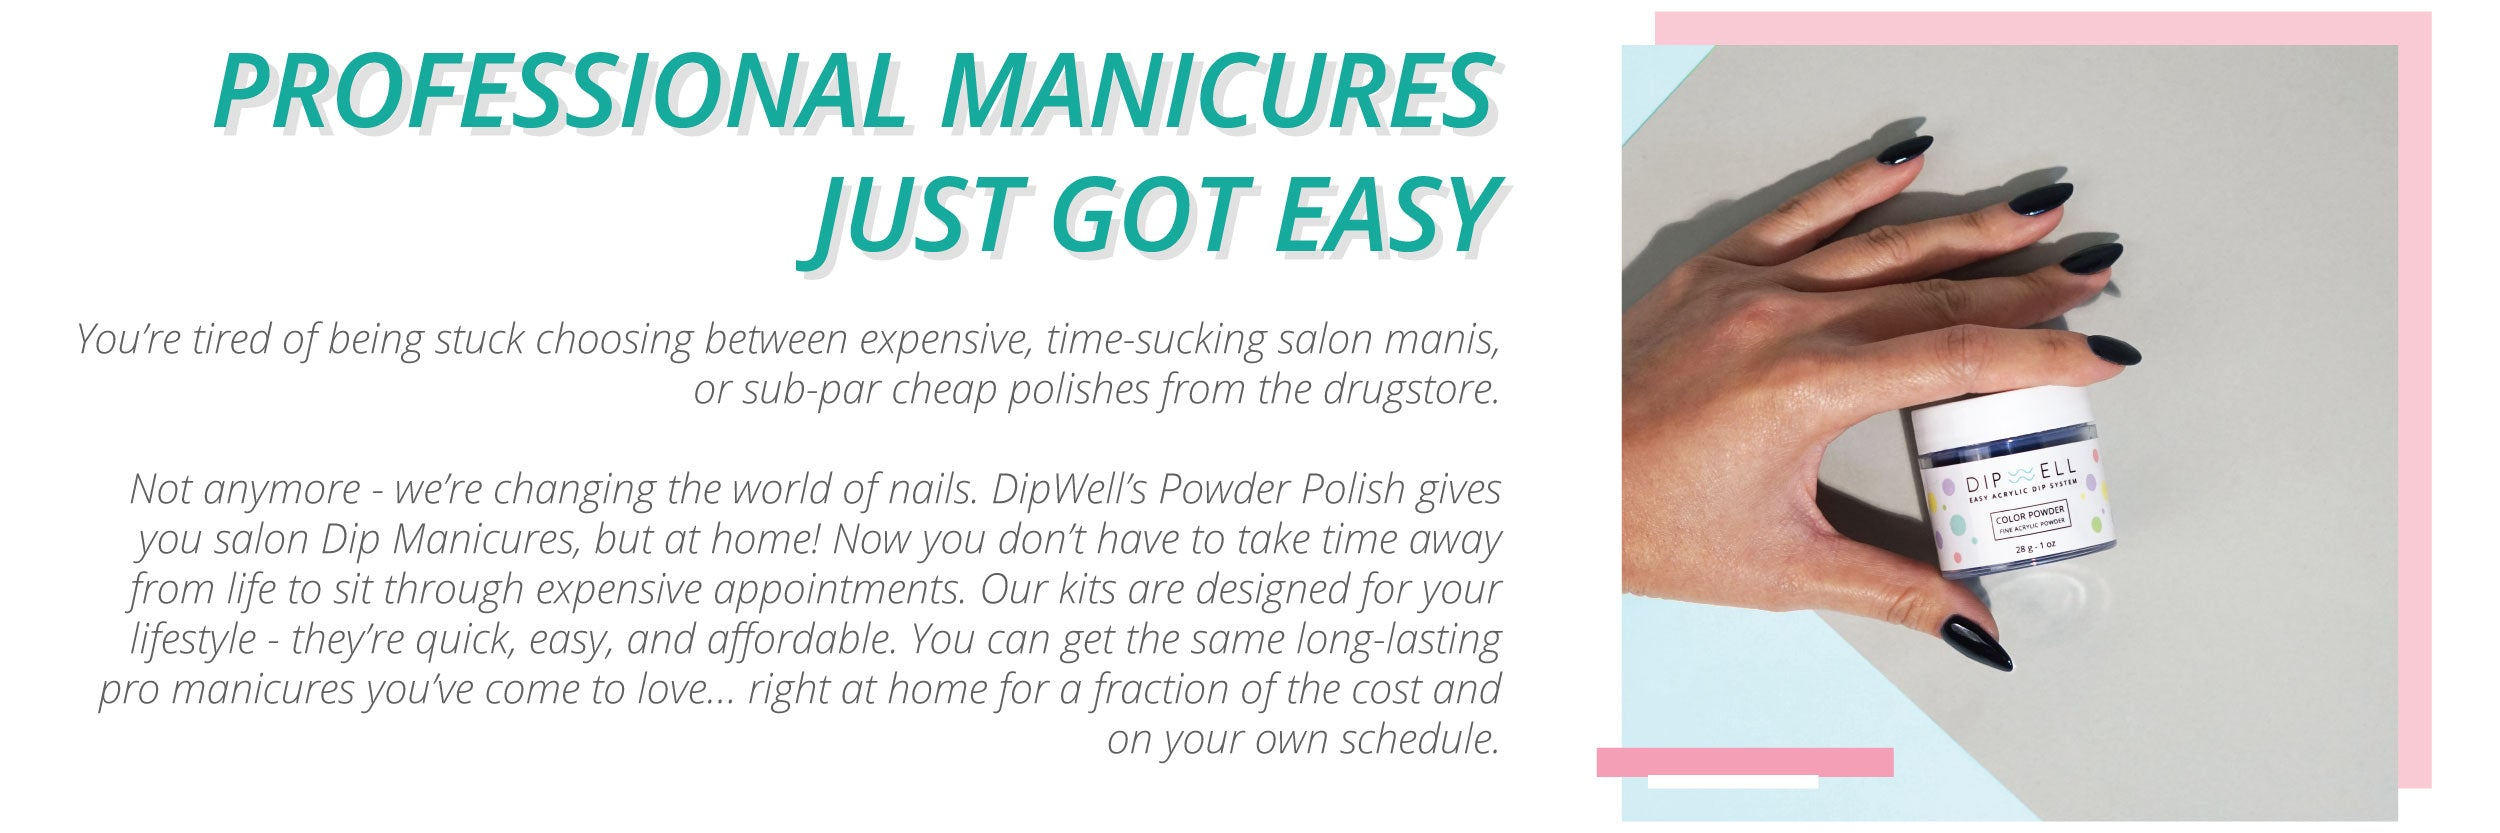 DipWell Nails | Professional Manicures Just Got Easy